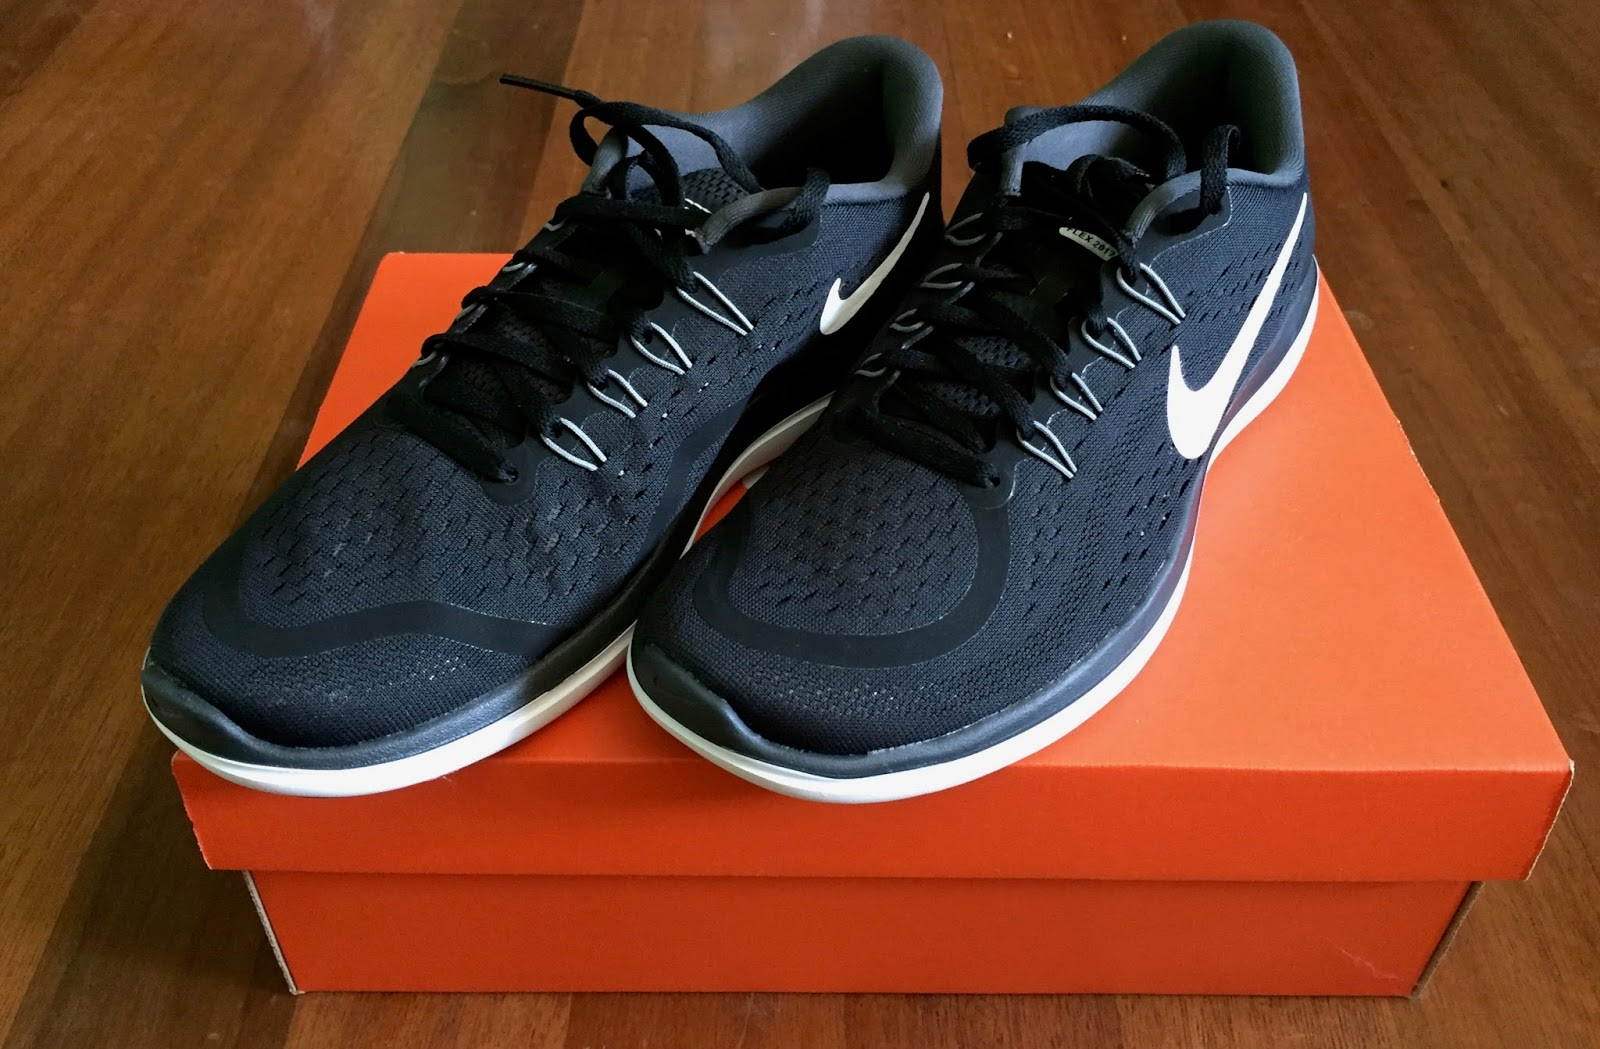 best authentic d7b04 b3600 Nike Flex 2017 RN (BlackWhite-Anthracite) PHP 4,495.00